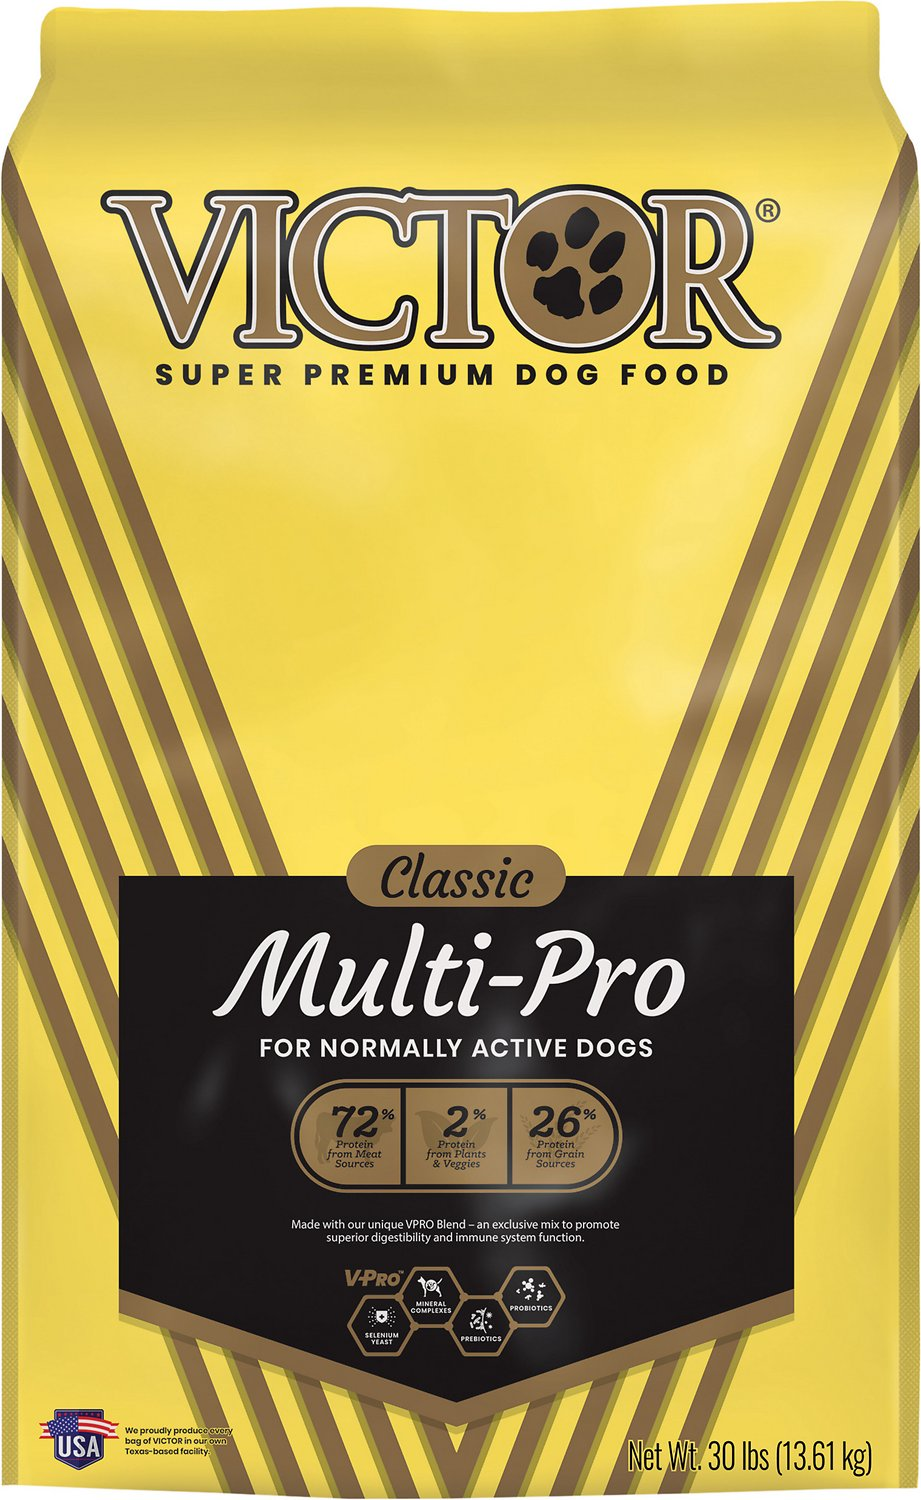 Victor Dog Food Reviews >> Victor Multi-Pro Dry Dog Food, 30-lb bag - Chewy.com